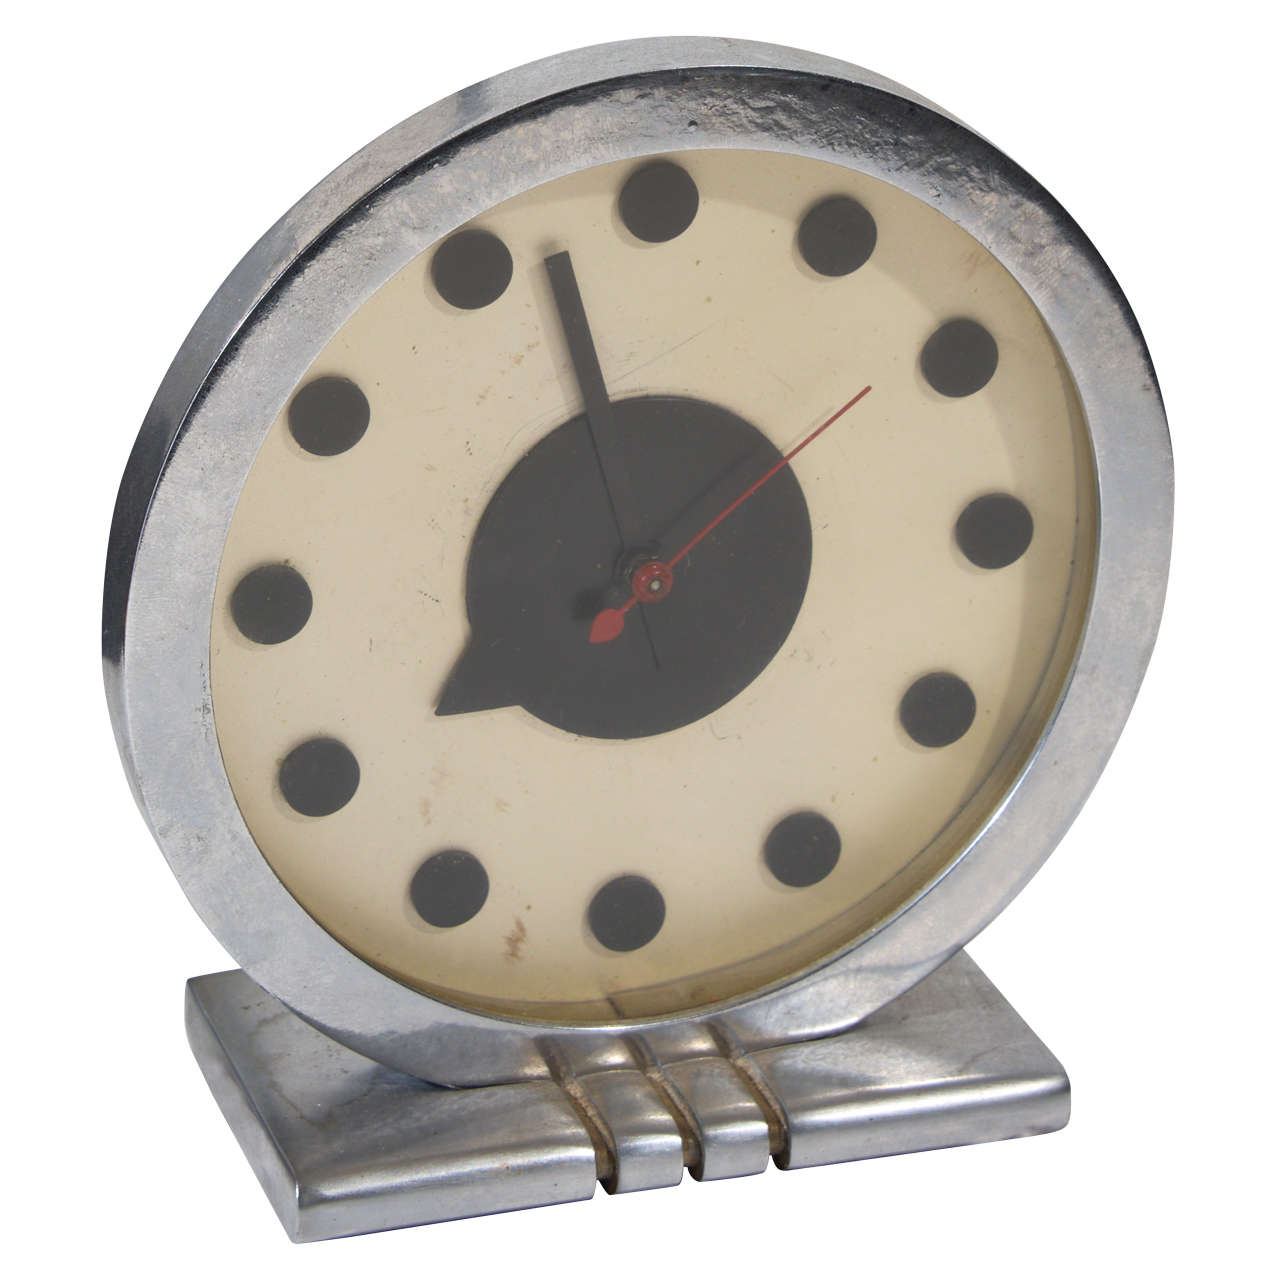 iconic rohde for herman miller desk clock at stdibs - iconic rohde for herman miller desk clock